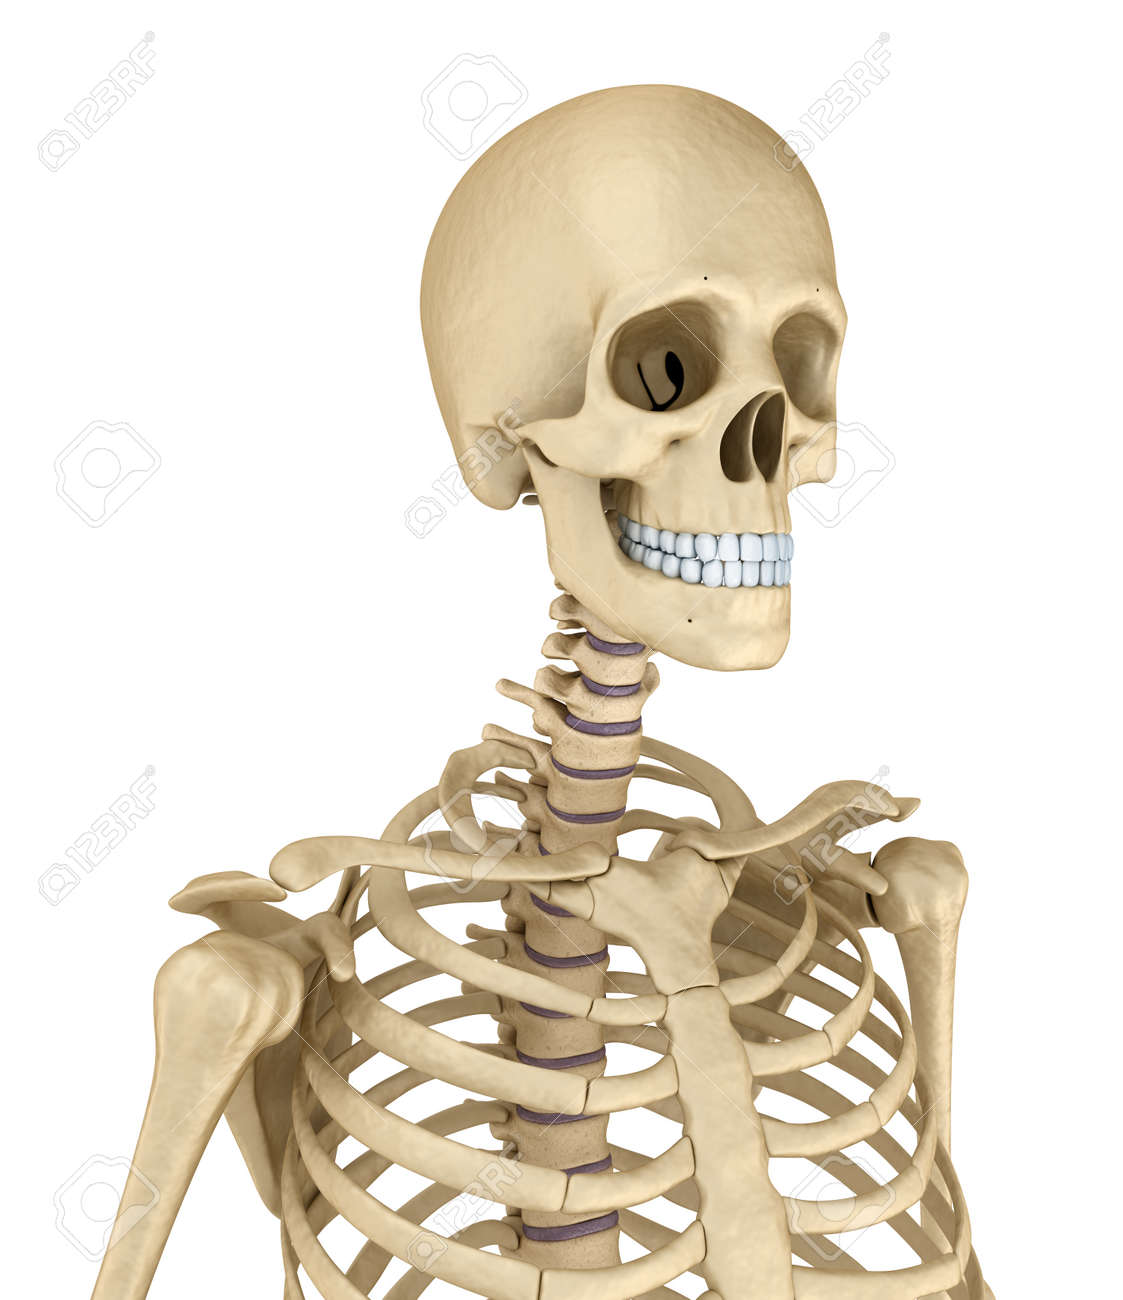 hight resolution of torso of human skeleton isolated medically accurate 3d illustration stock illustration 66965821